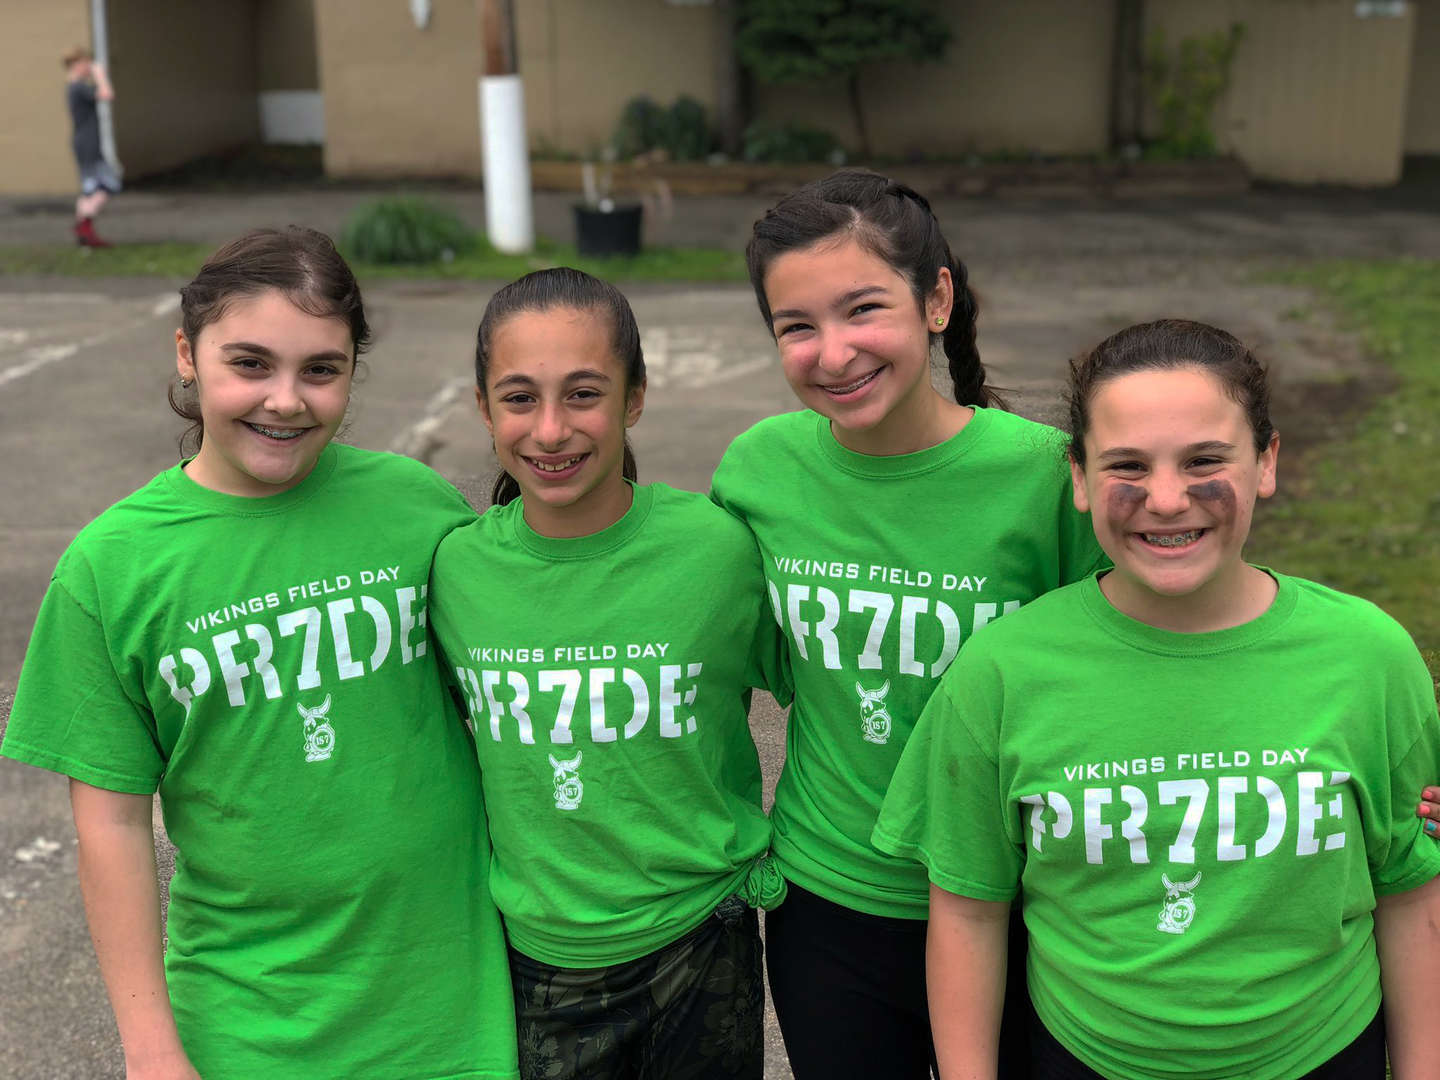 7th graders wear their green Vikings Field Day shirts for the I.S. 7 Field Day